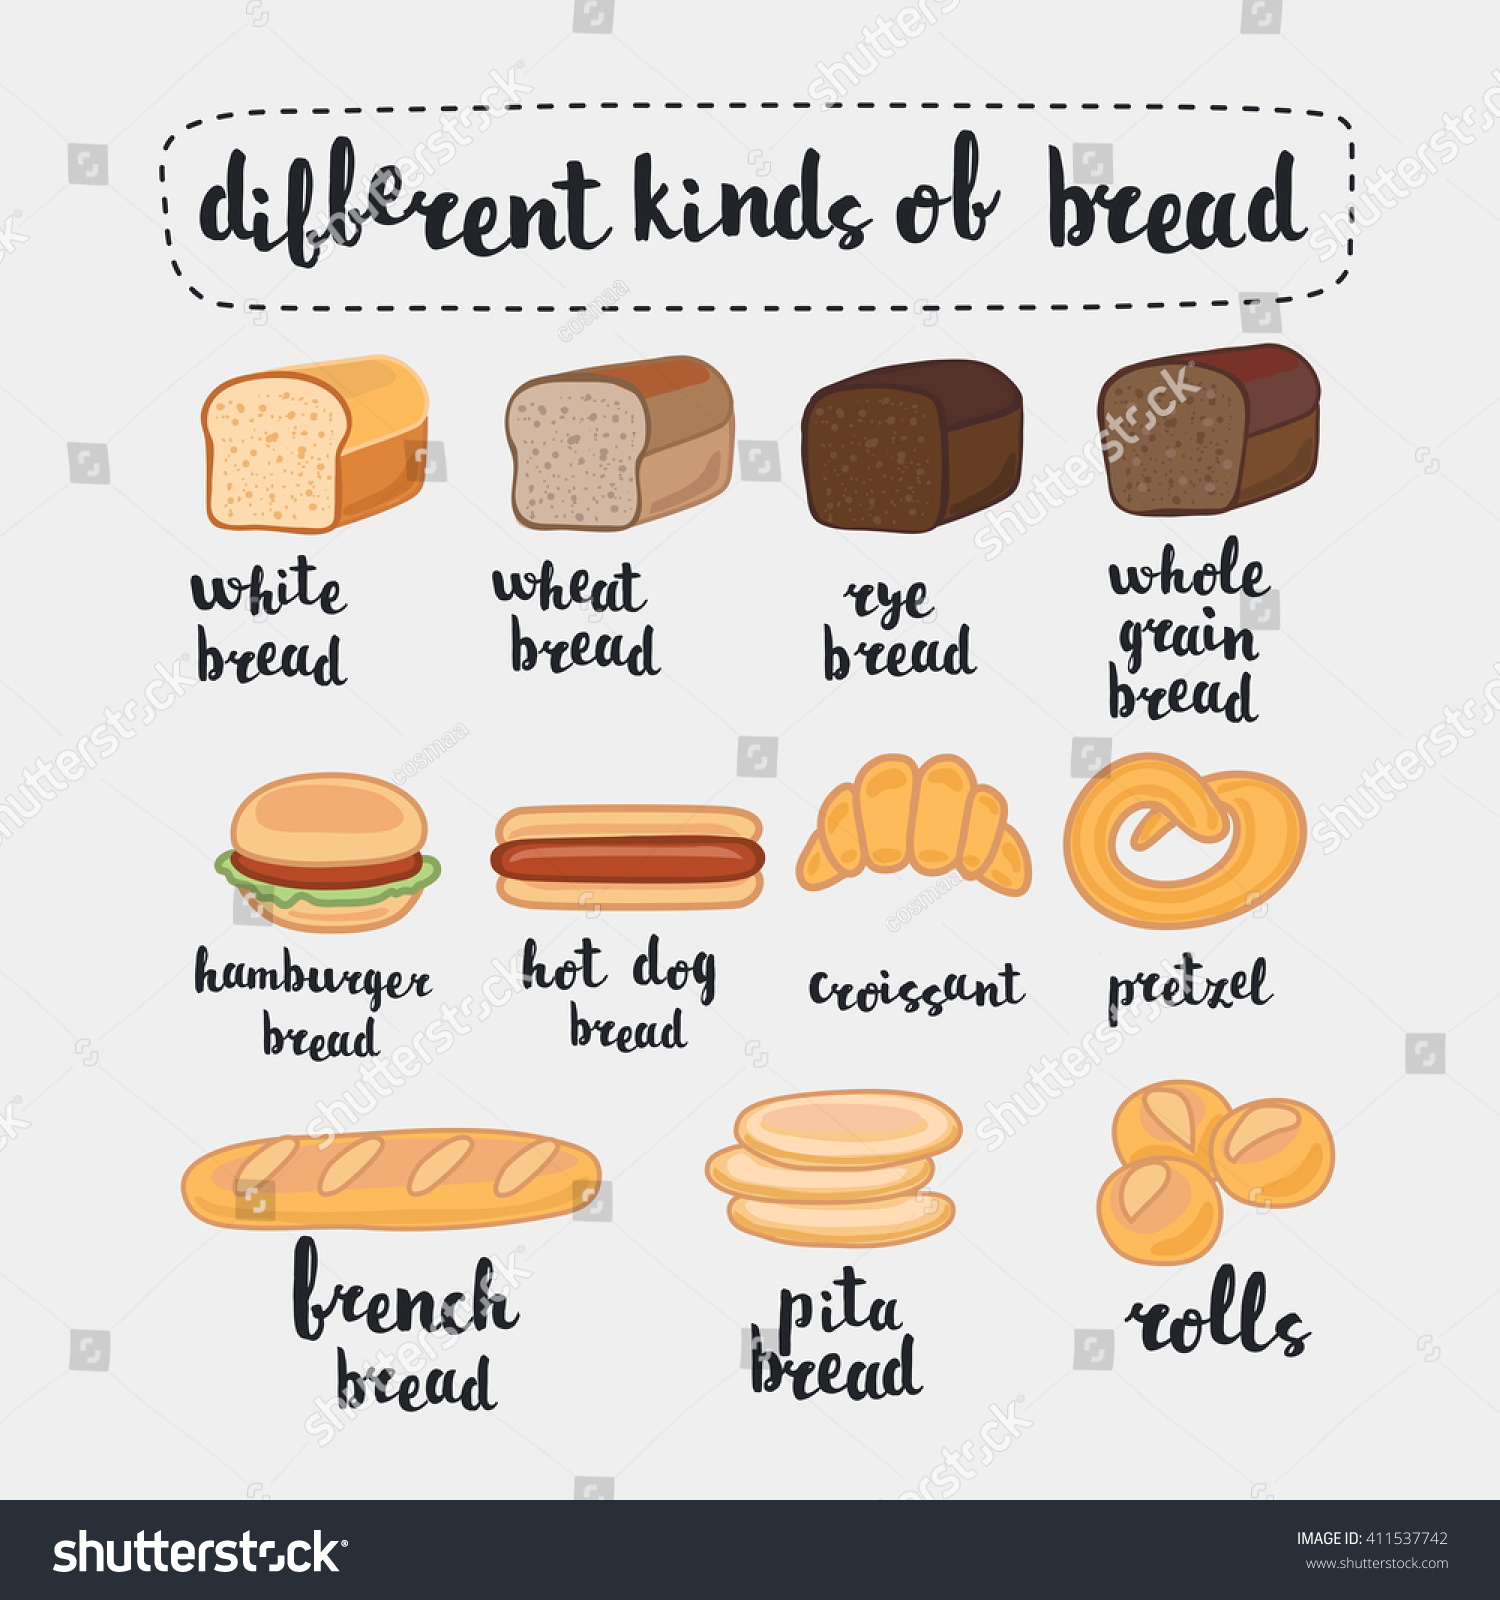 Different Kinds of Bread - English Conversations